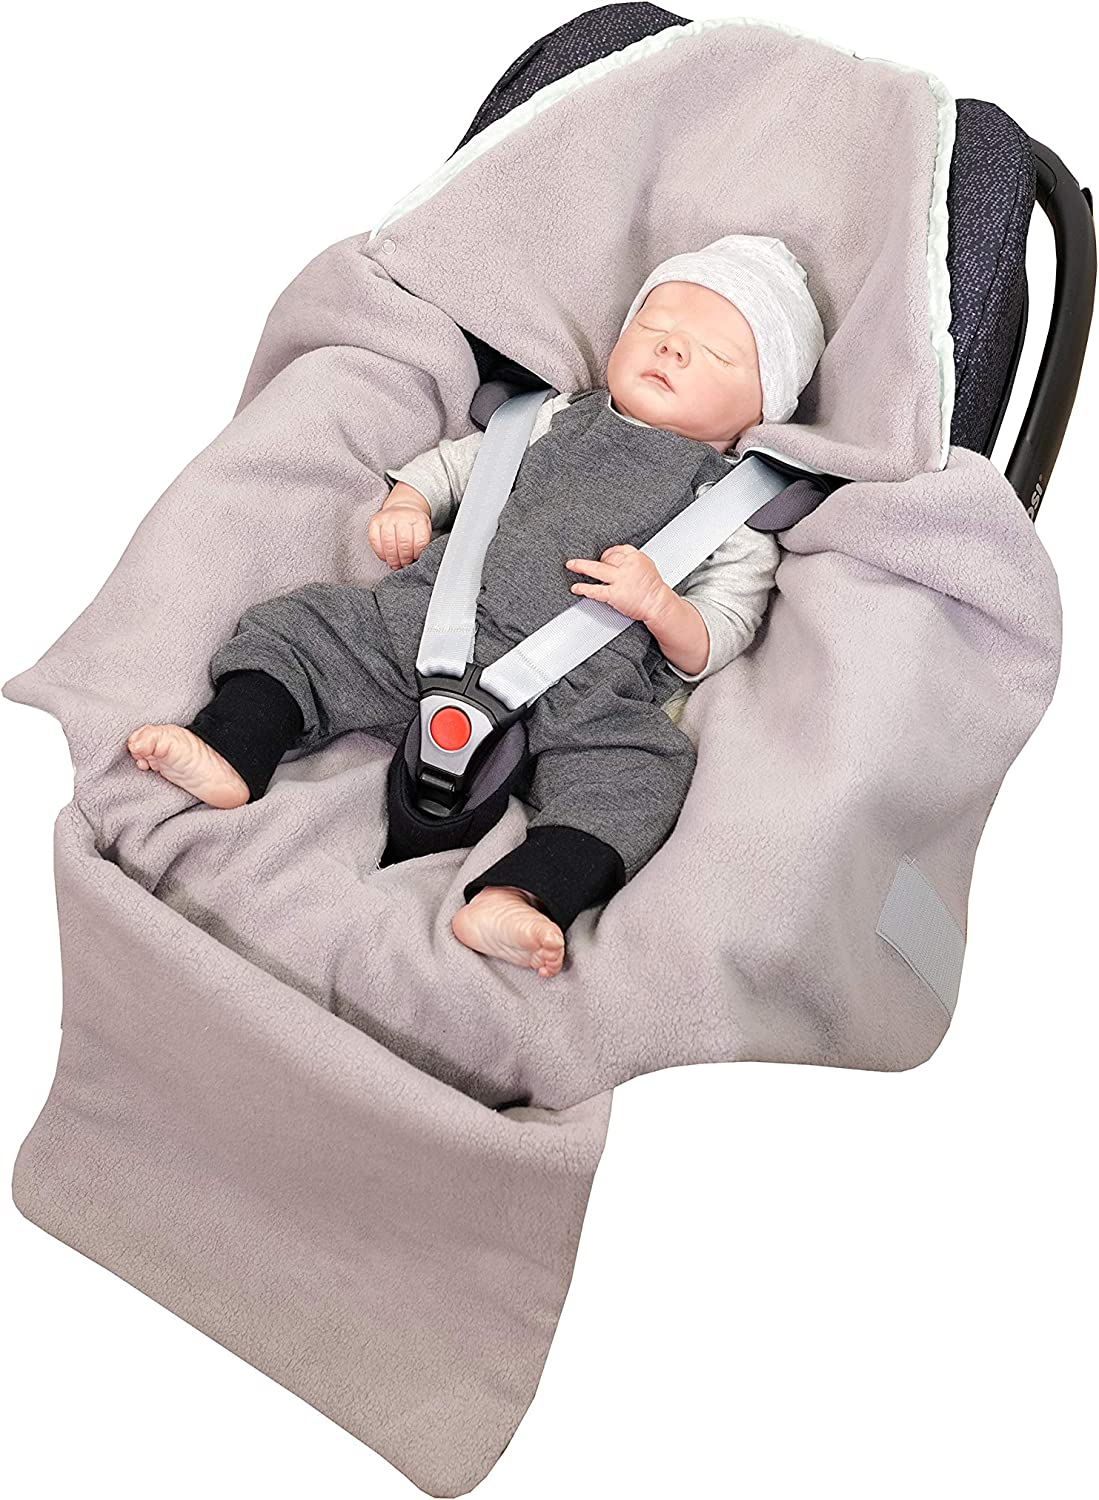 Buggies or Babycarriers Elephants Mint Pink 0 to 9 Months ULLENBOOM Baby Wrap for Car Seat I Suitable for Strollers